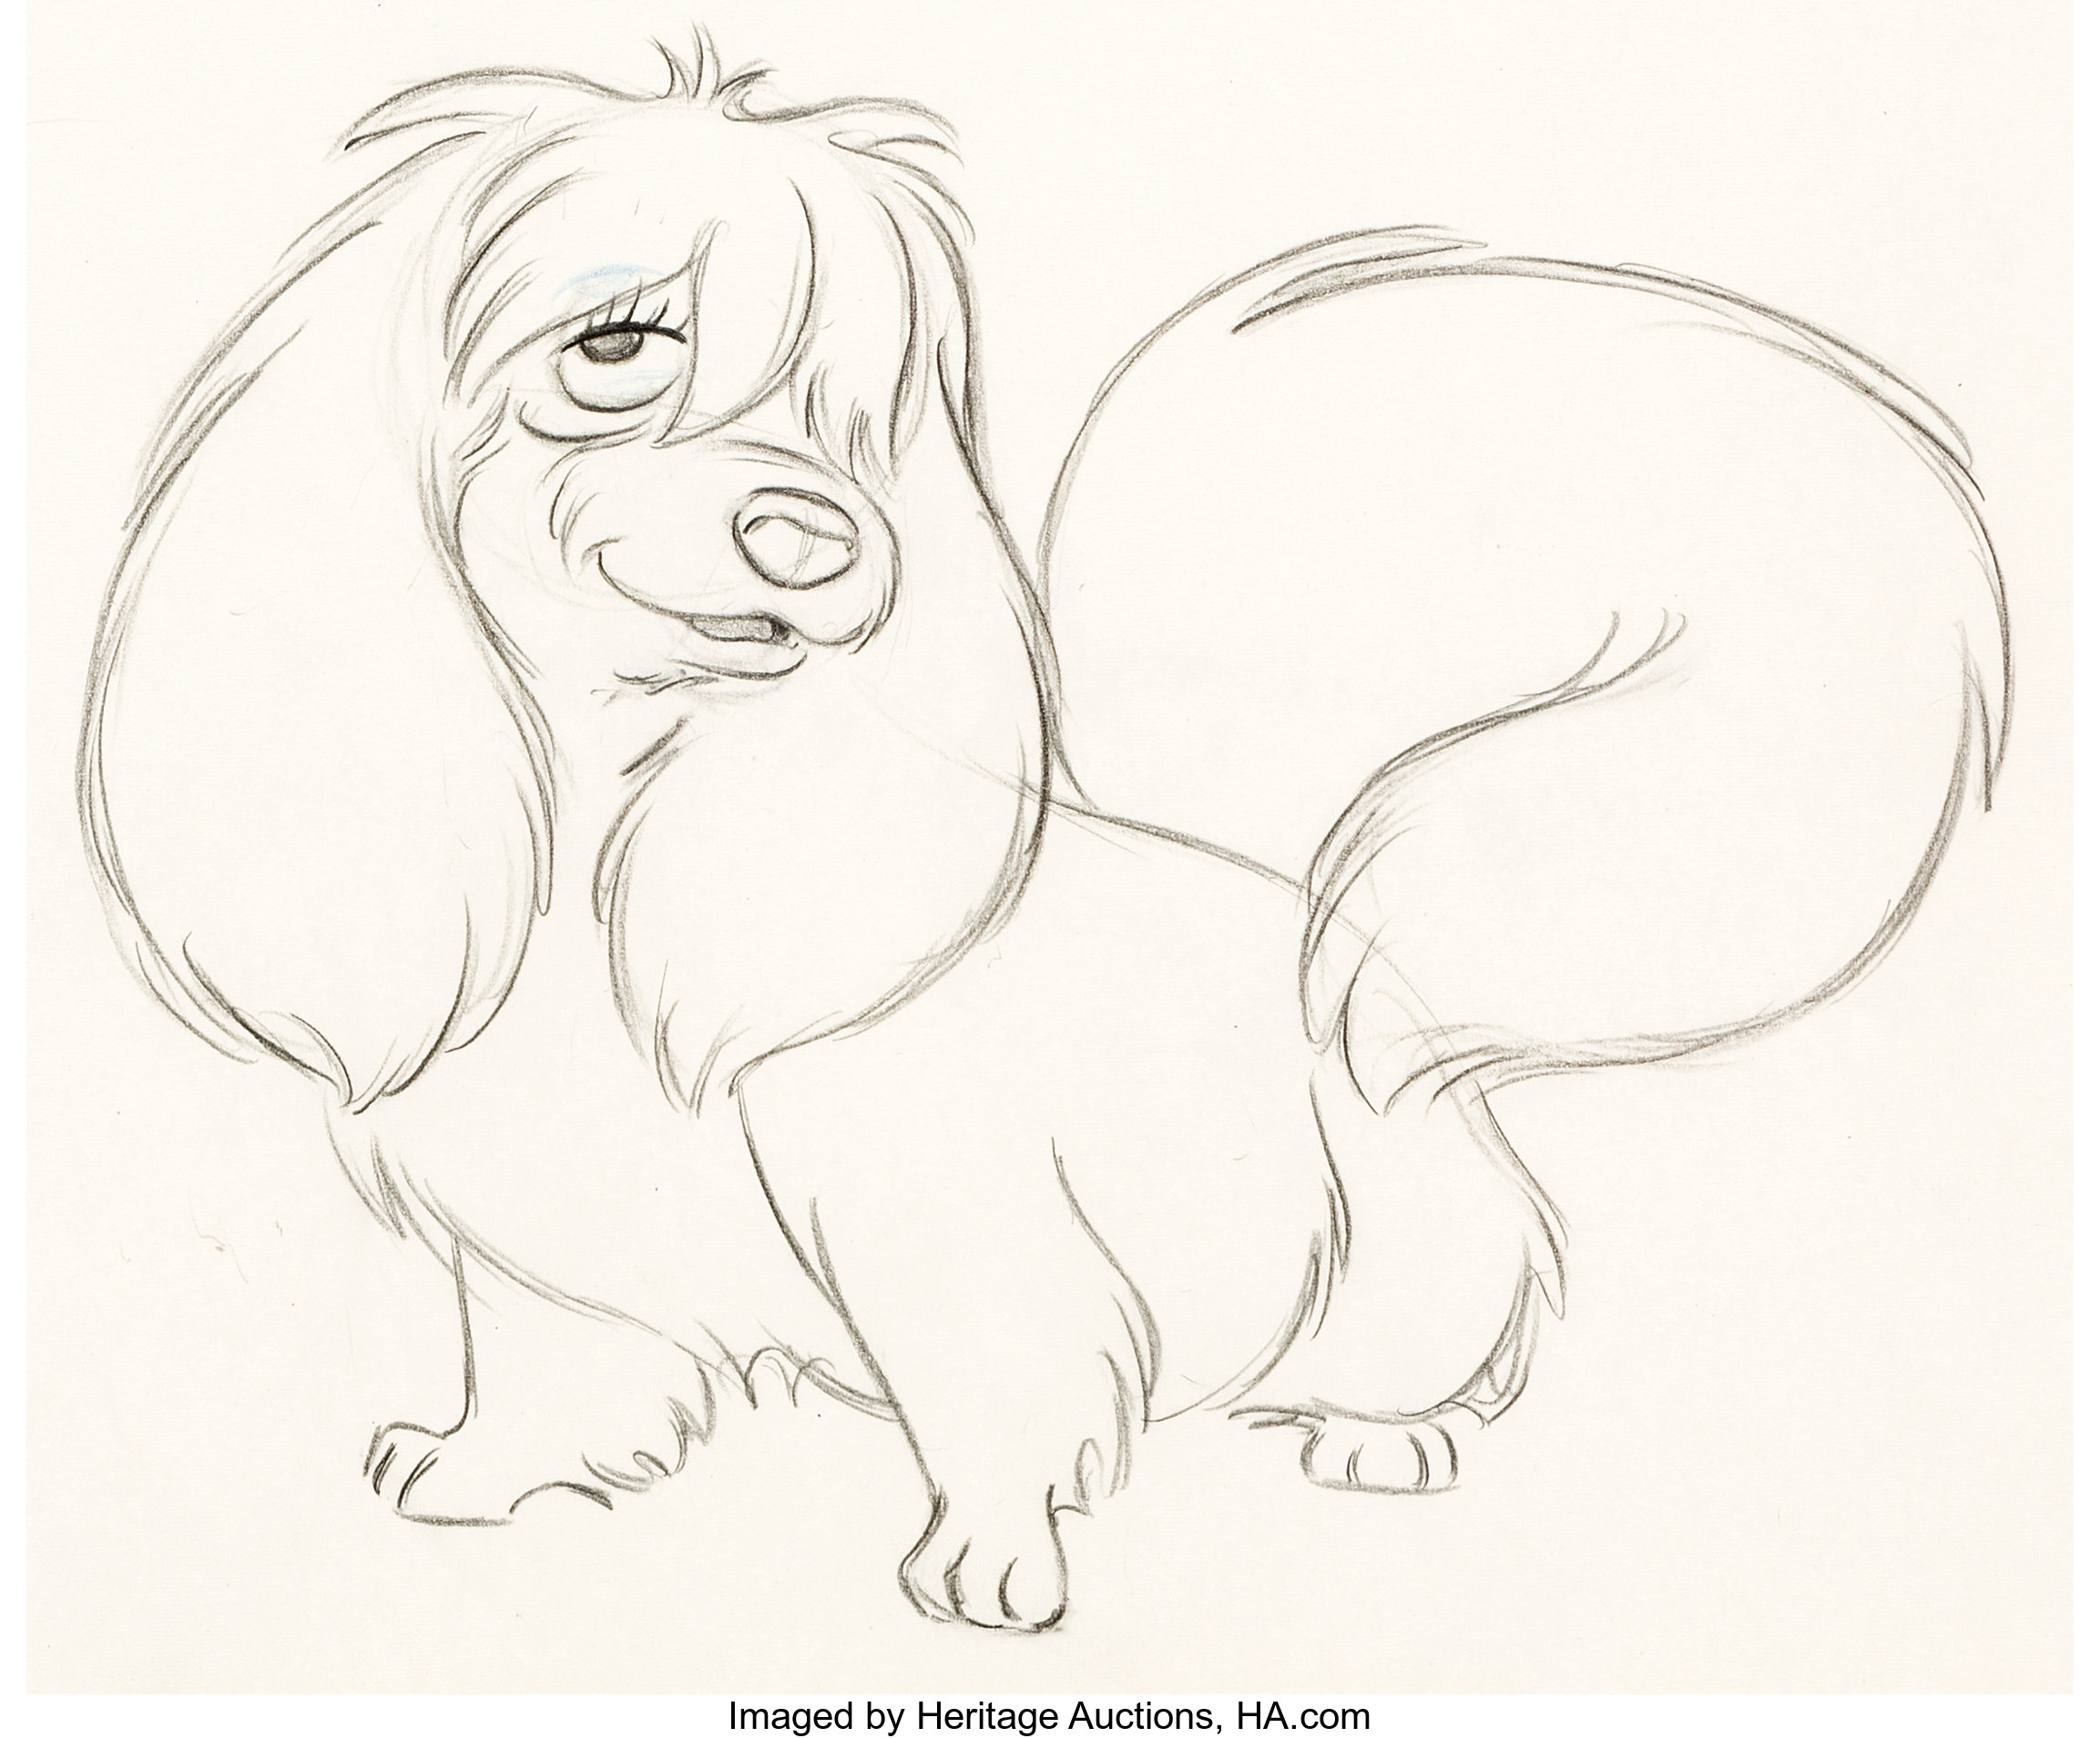 Lady And The Tramp Peg Animation Drawing Walt Disney 1955 Lot 12096 Heritage Auctions